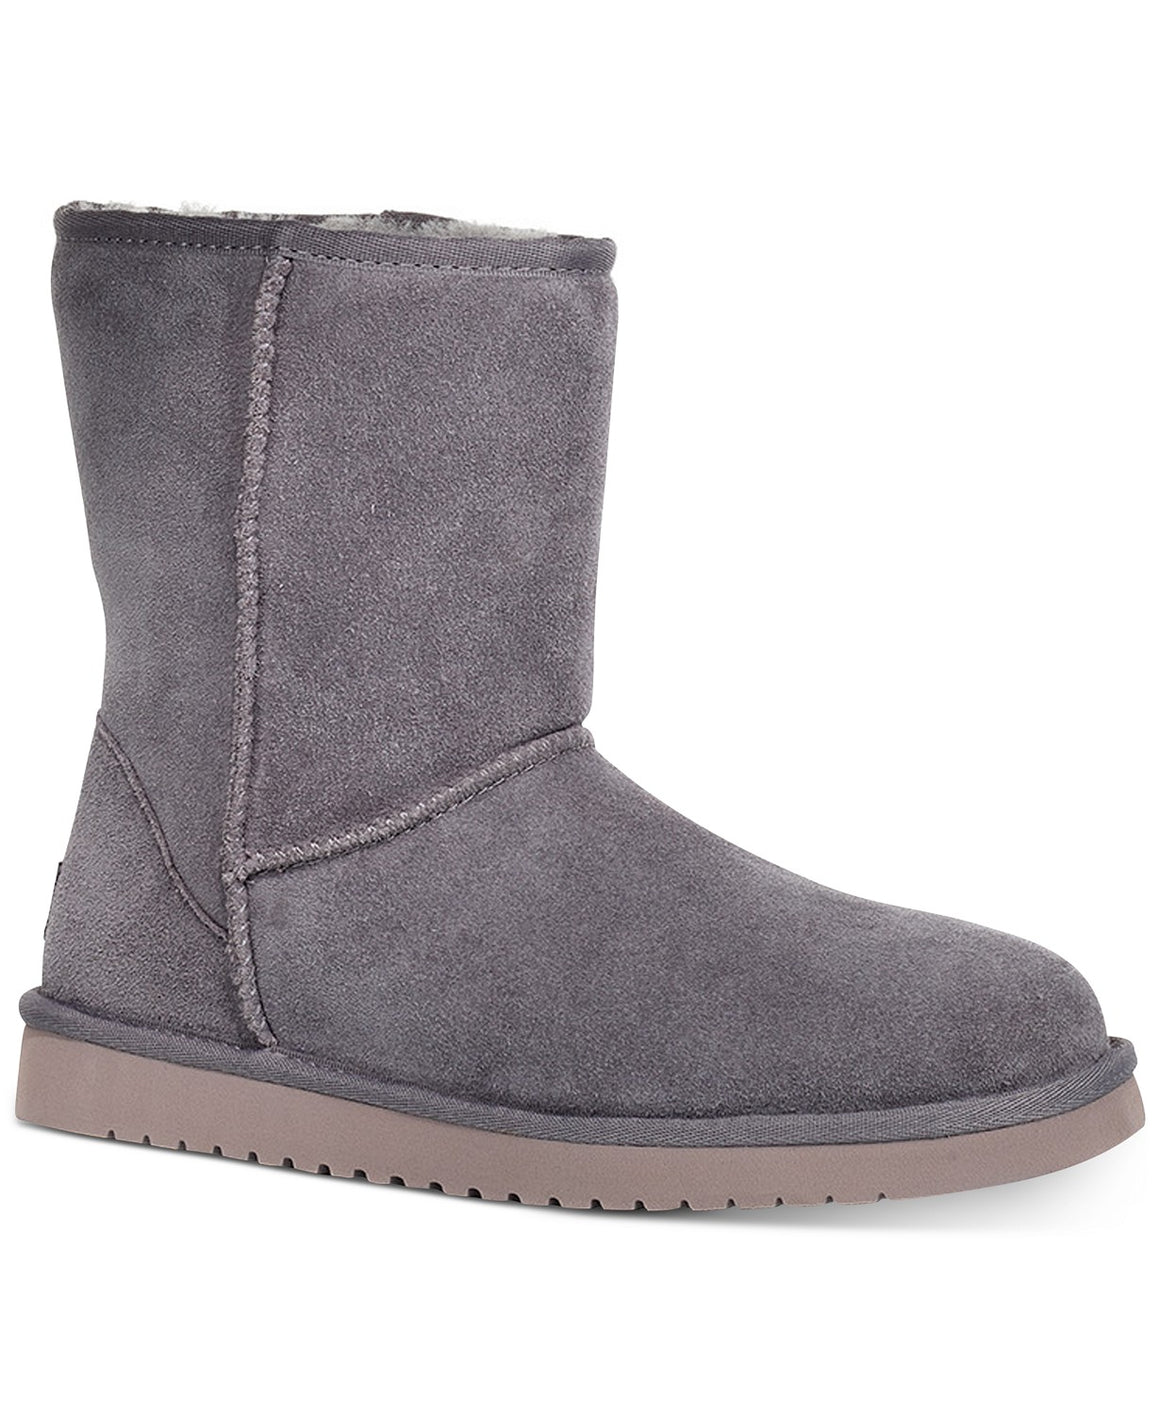 Koolaburra By UGG Koola Short Rabbit Grey Boots - Women's